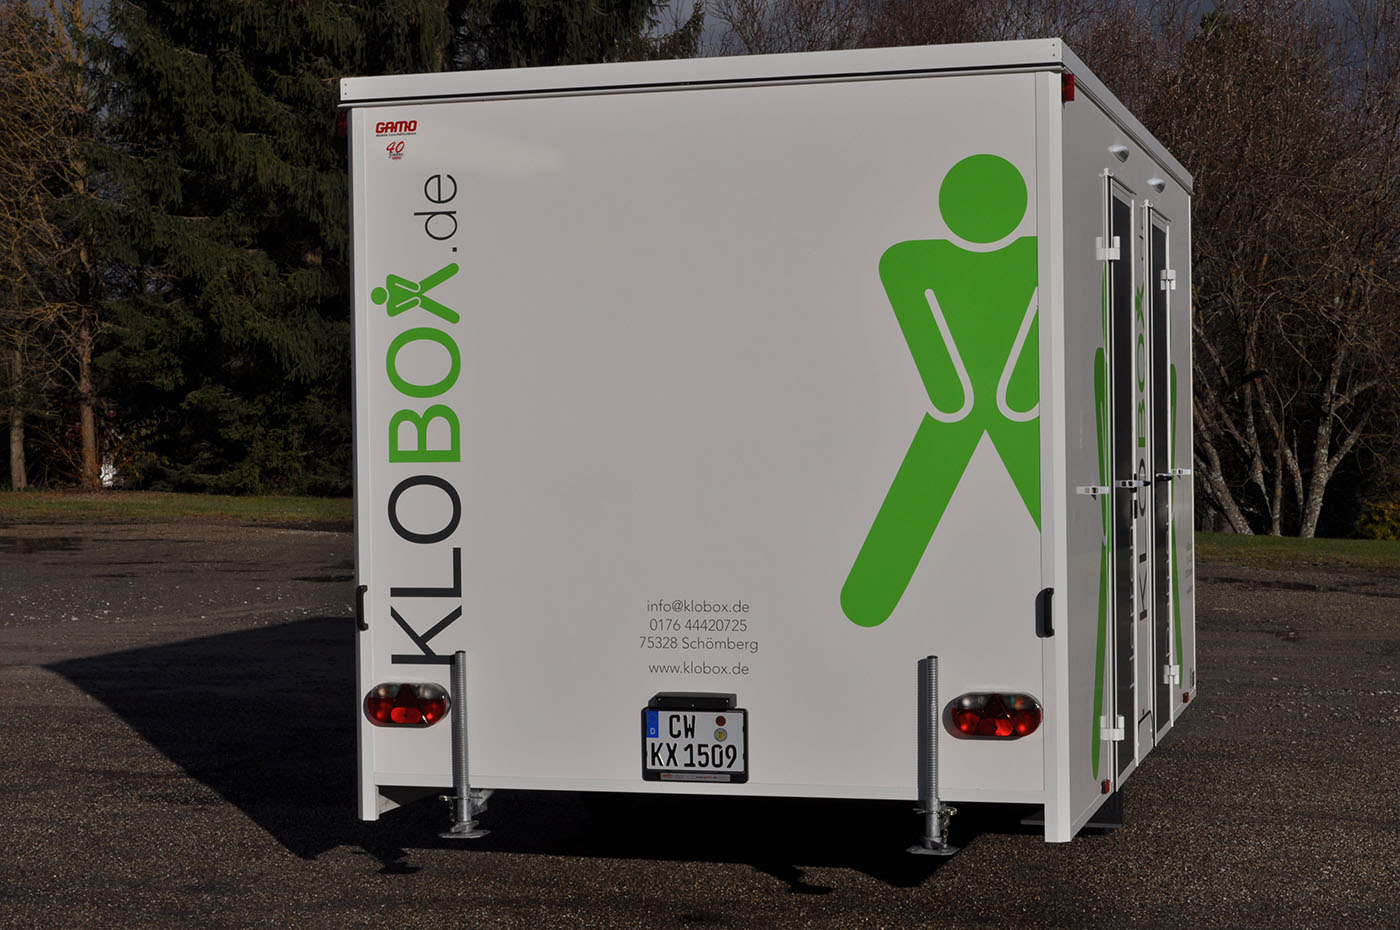 Toilettenwagen - klobox.de #05